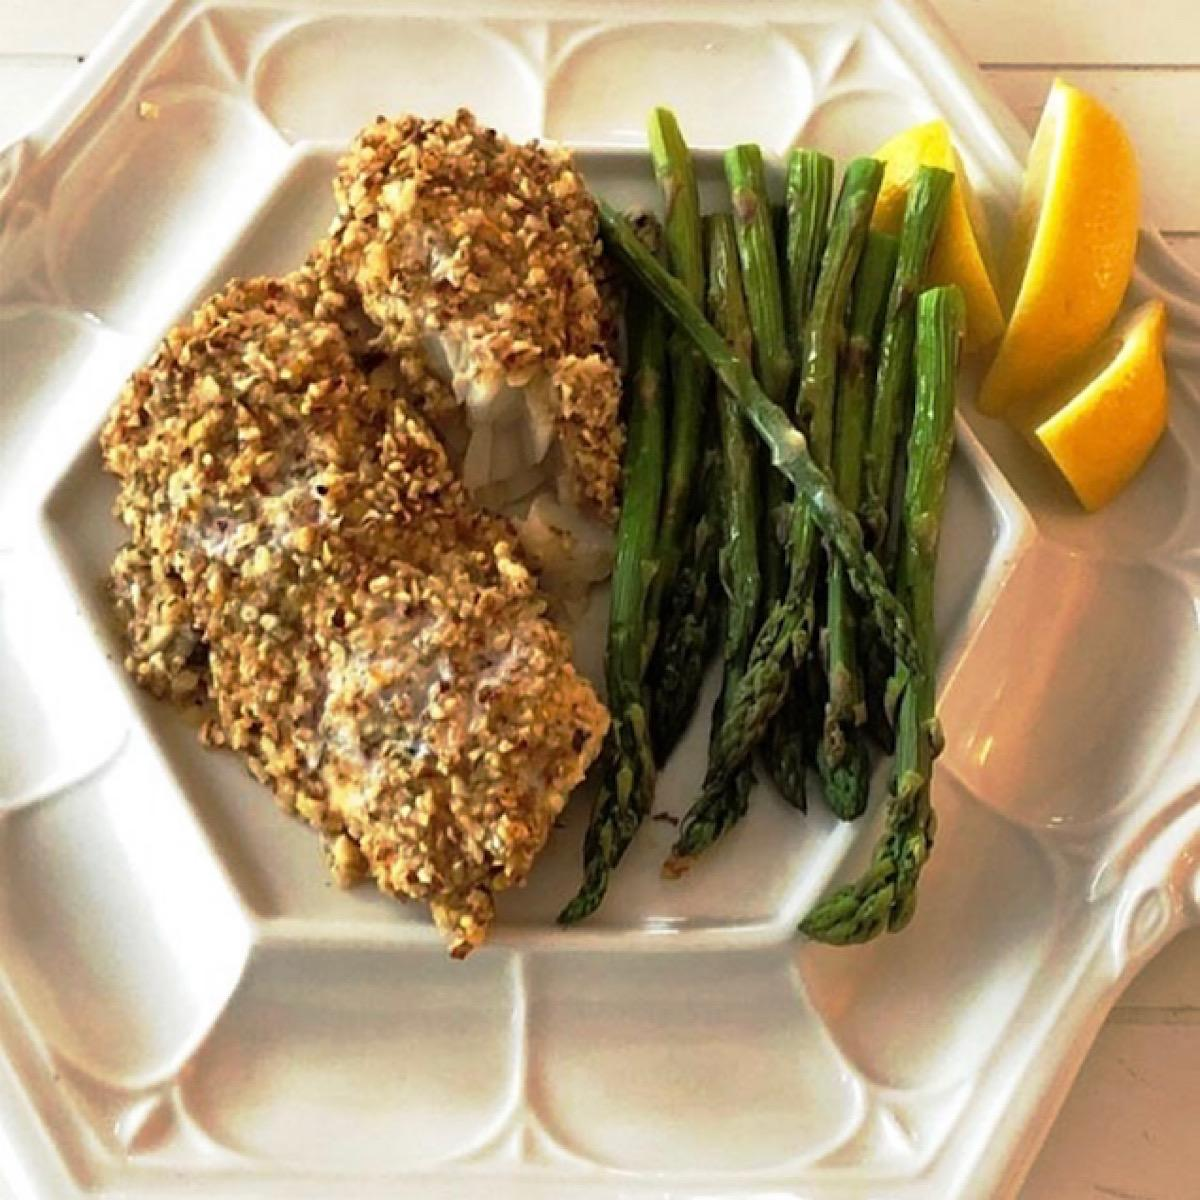 Low carb dinner of almond-crusted cod with asparagus spears